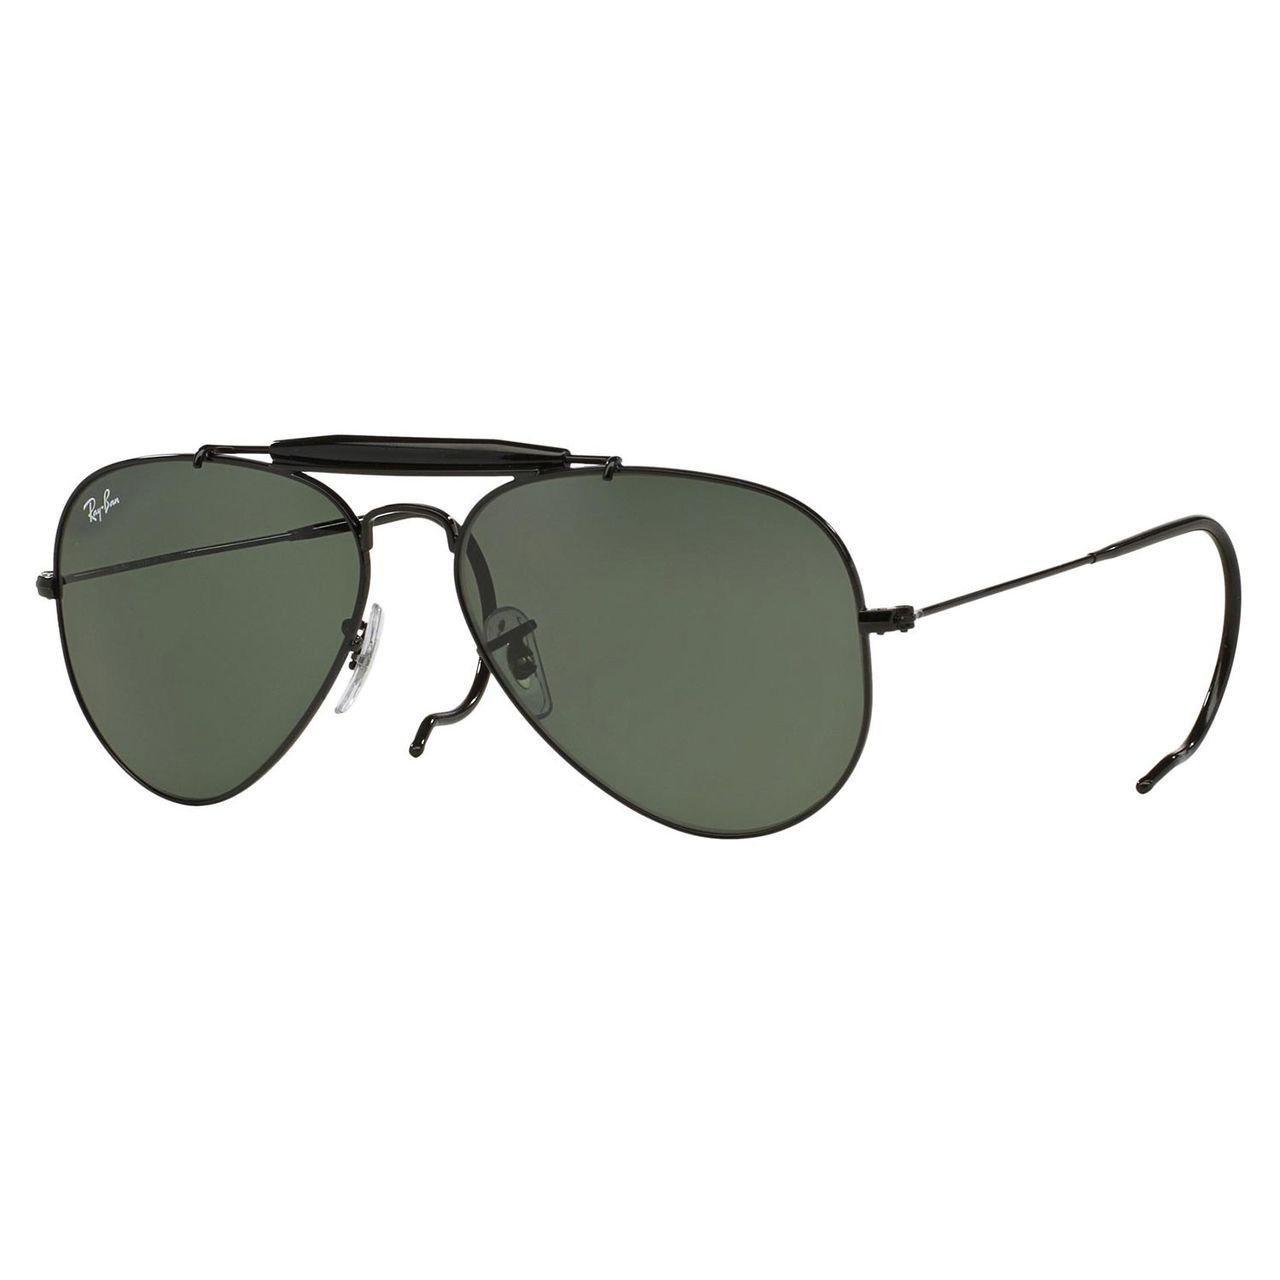 4484faef9c Shop Ray-Ban Men s RB3030 Black Metal Pilot Sunglasses - Free Shipping  Today - Overstock - 10482611